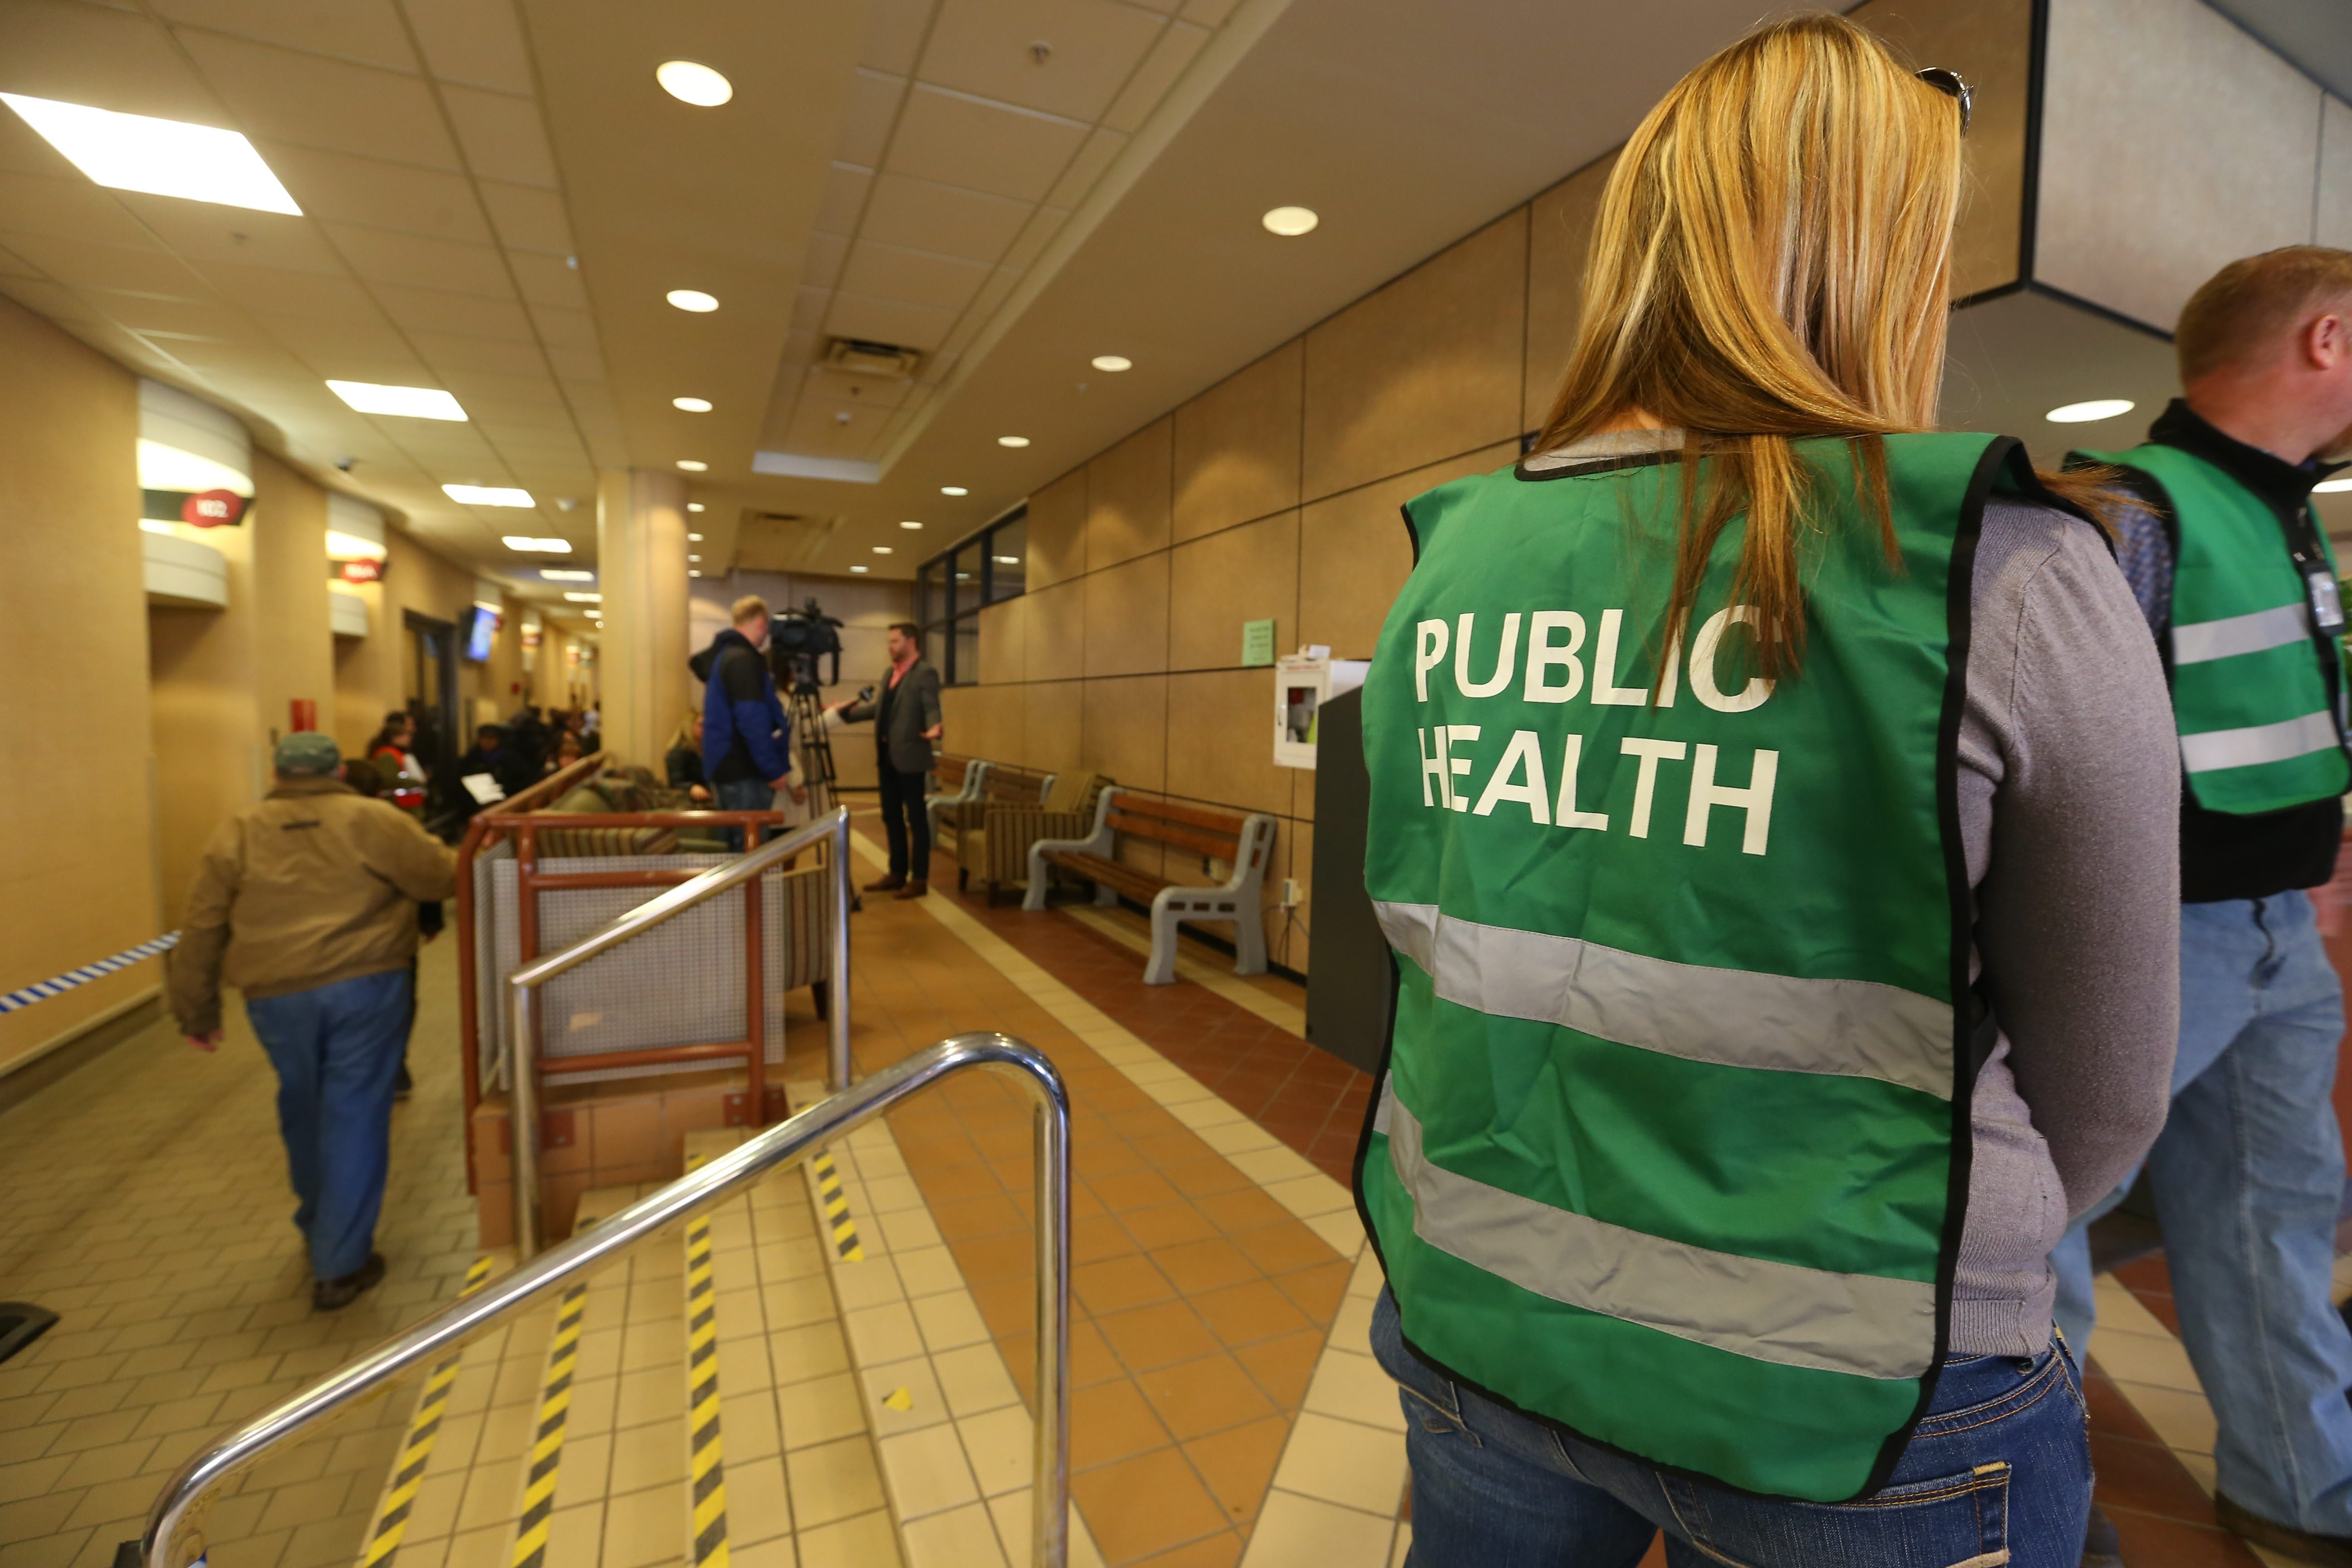 Erie County Health Department workers greet people as they file into get vaccinated for hepatitis A at the Buffalo Niagara Convention Center in Buffalo Monday, March 24, 2015.    (Mark Mulville/Buffalo News)